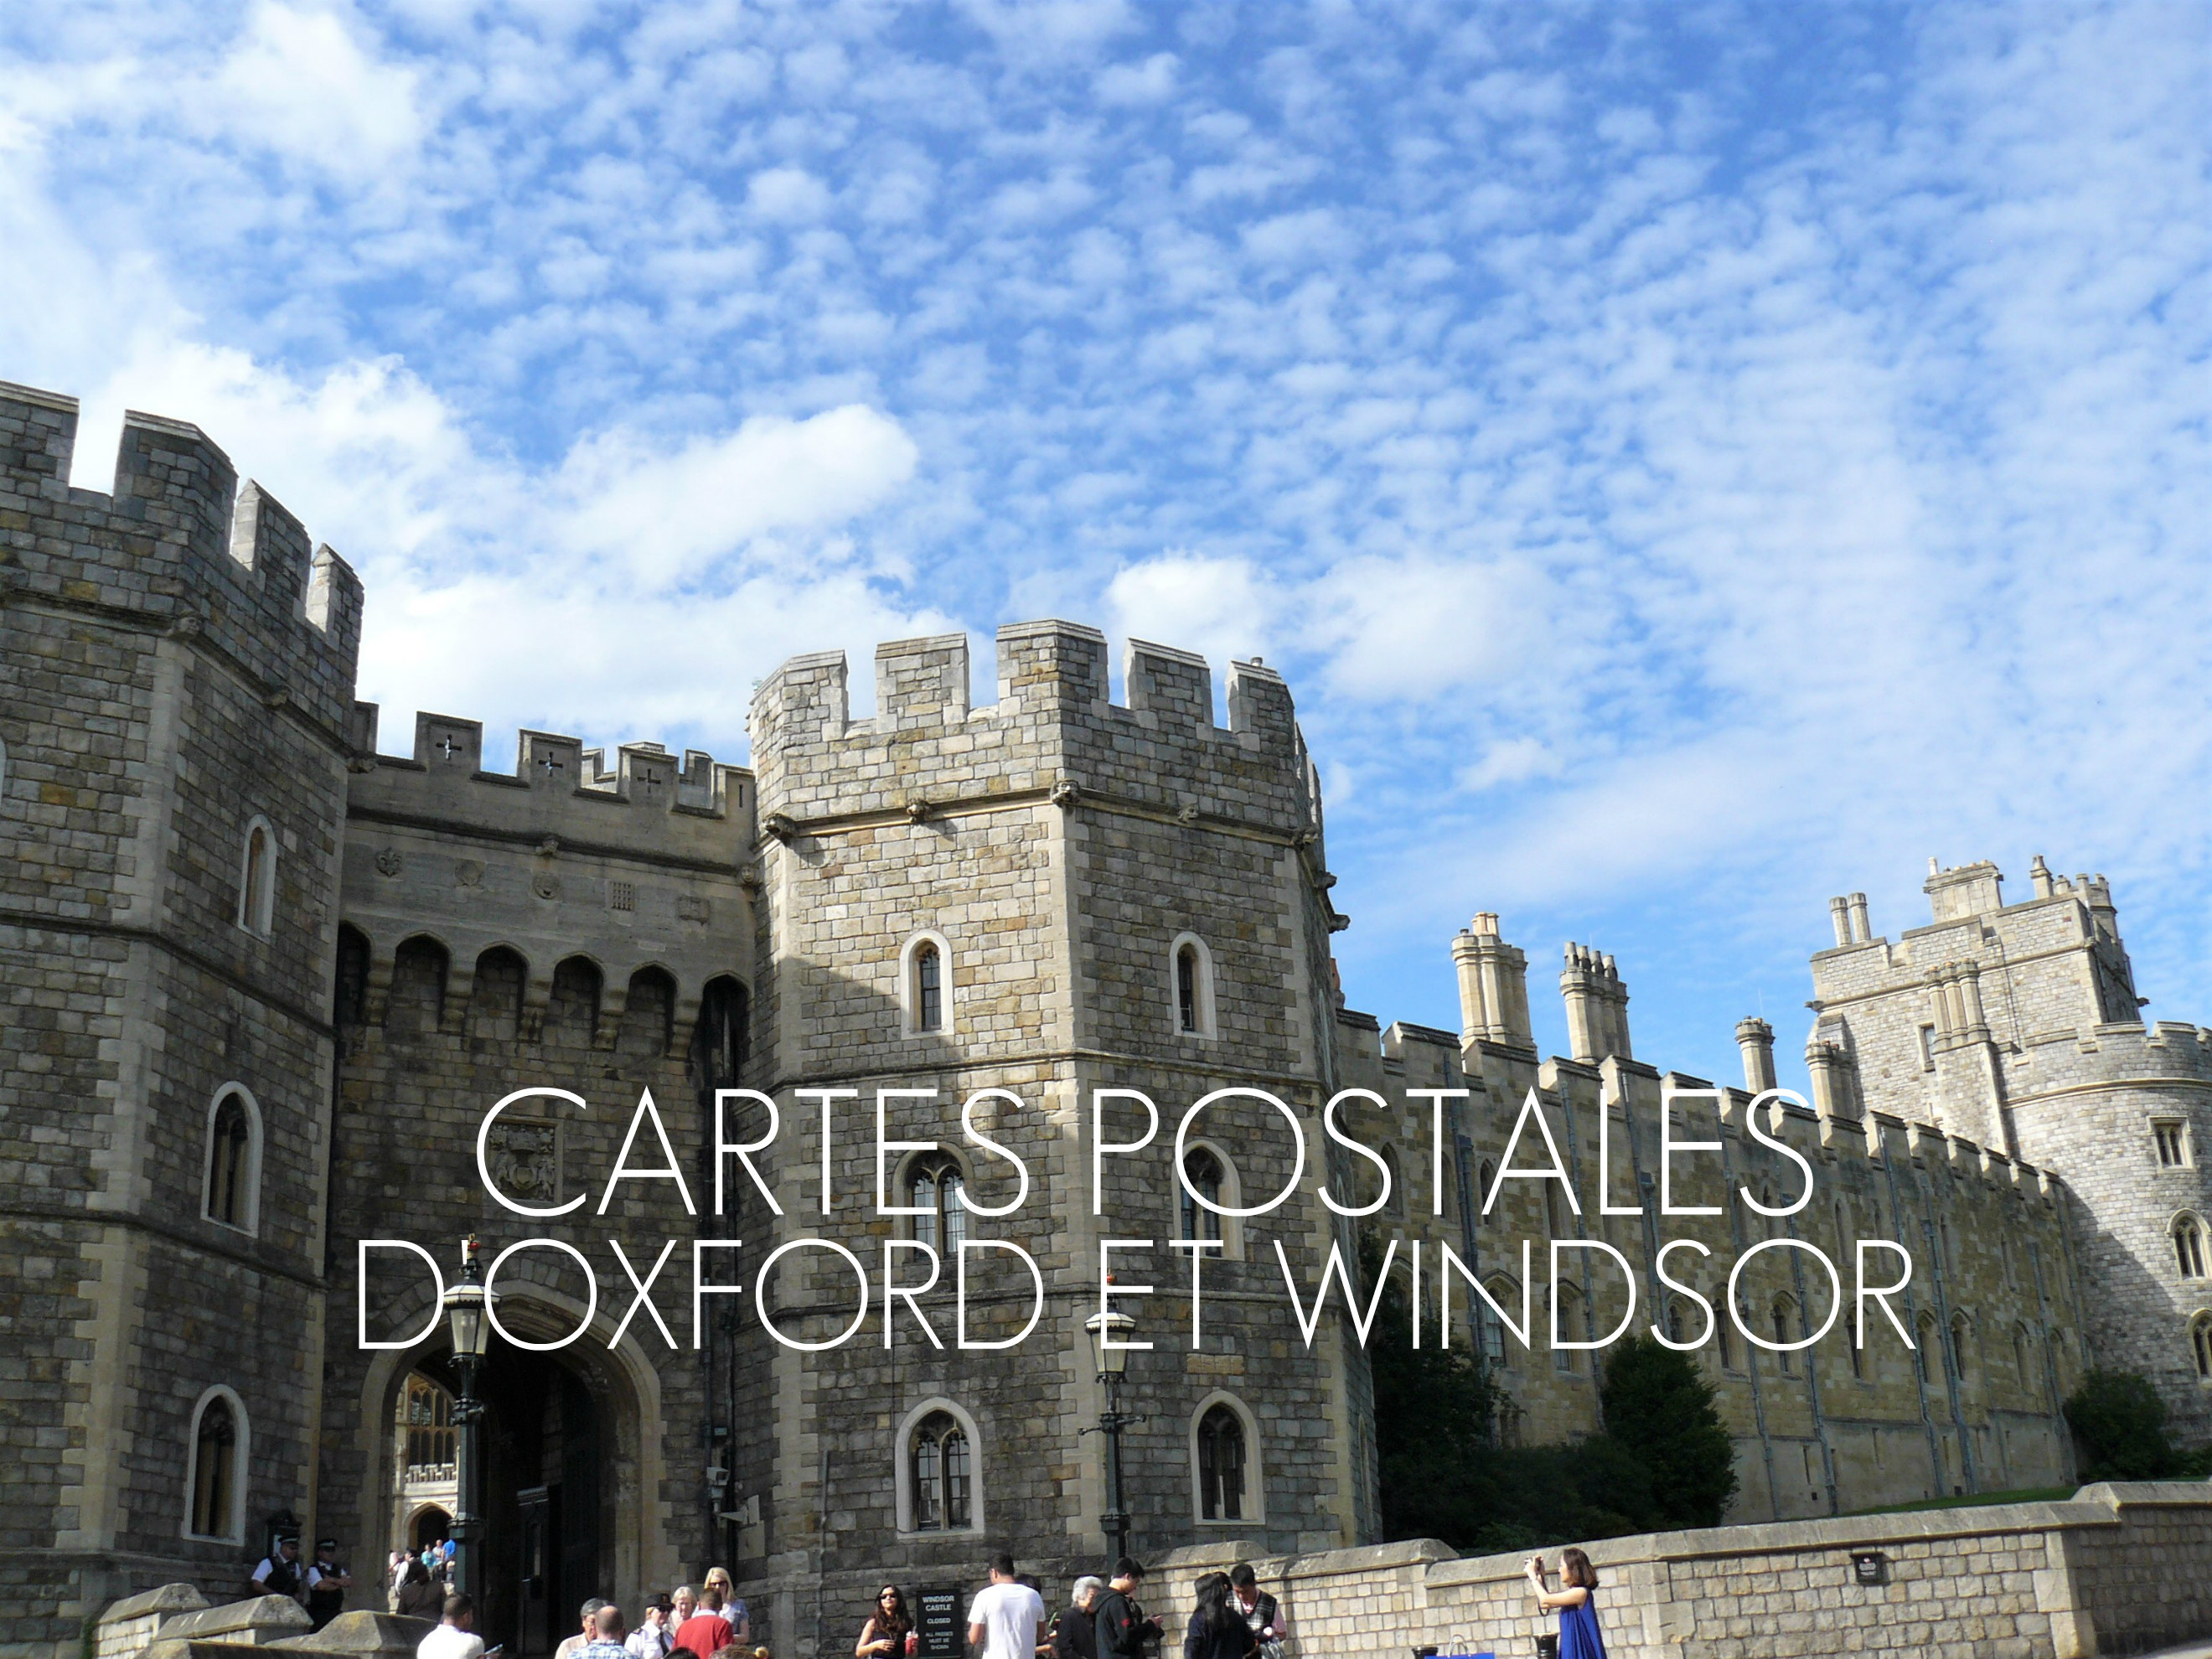 angleterre blog voyage windsor oxford cartes postales